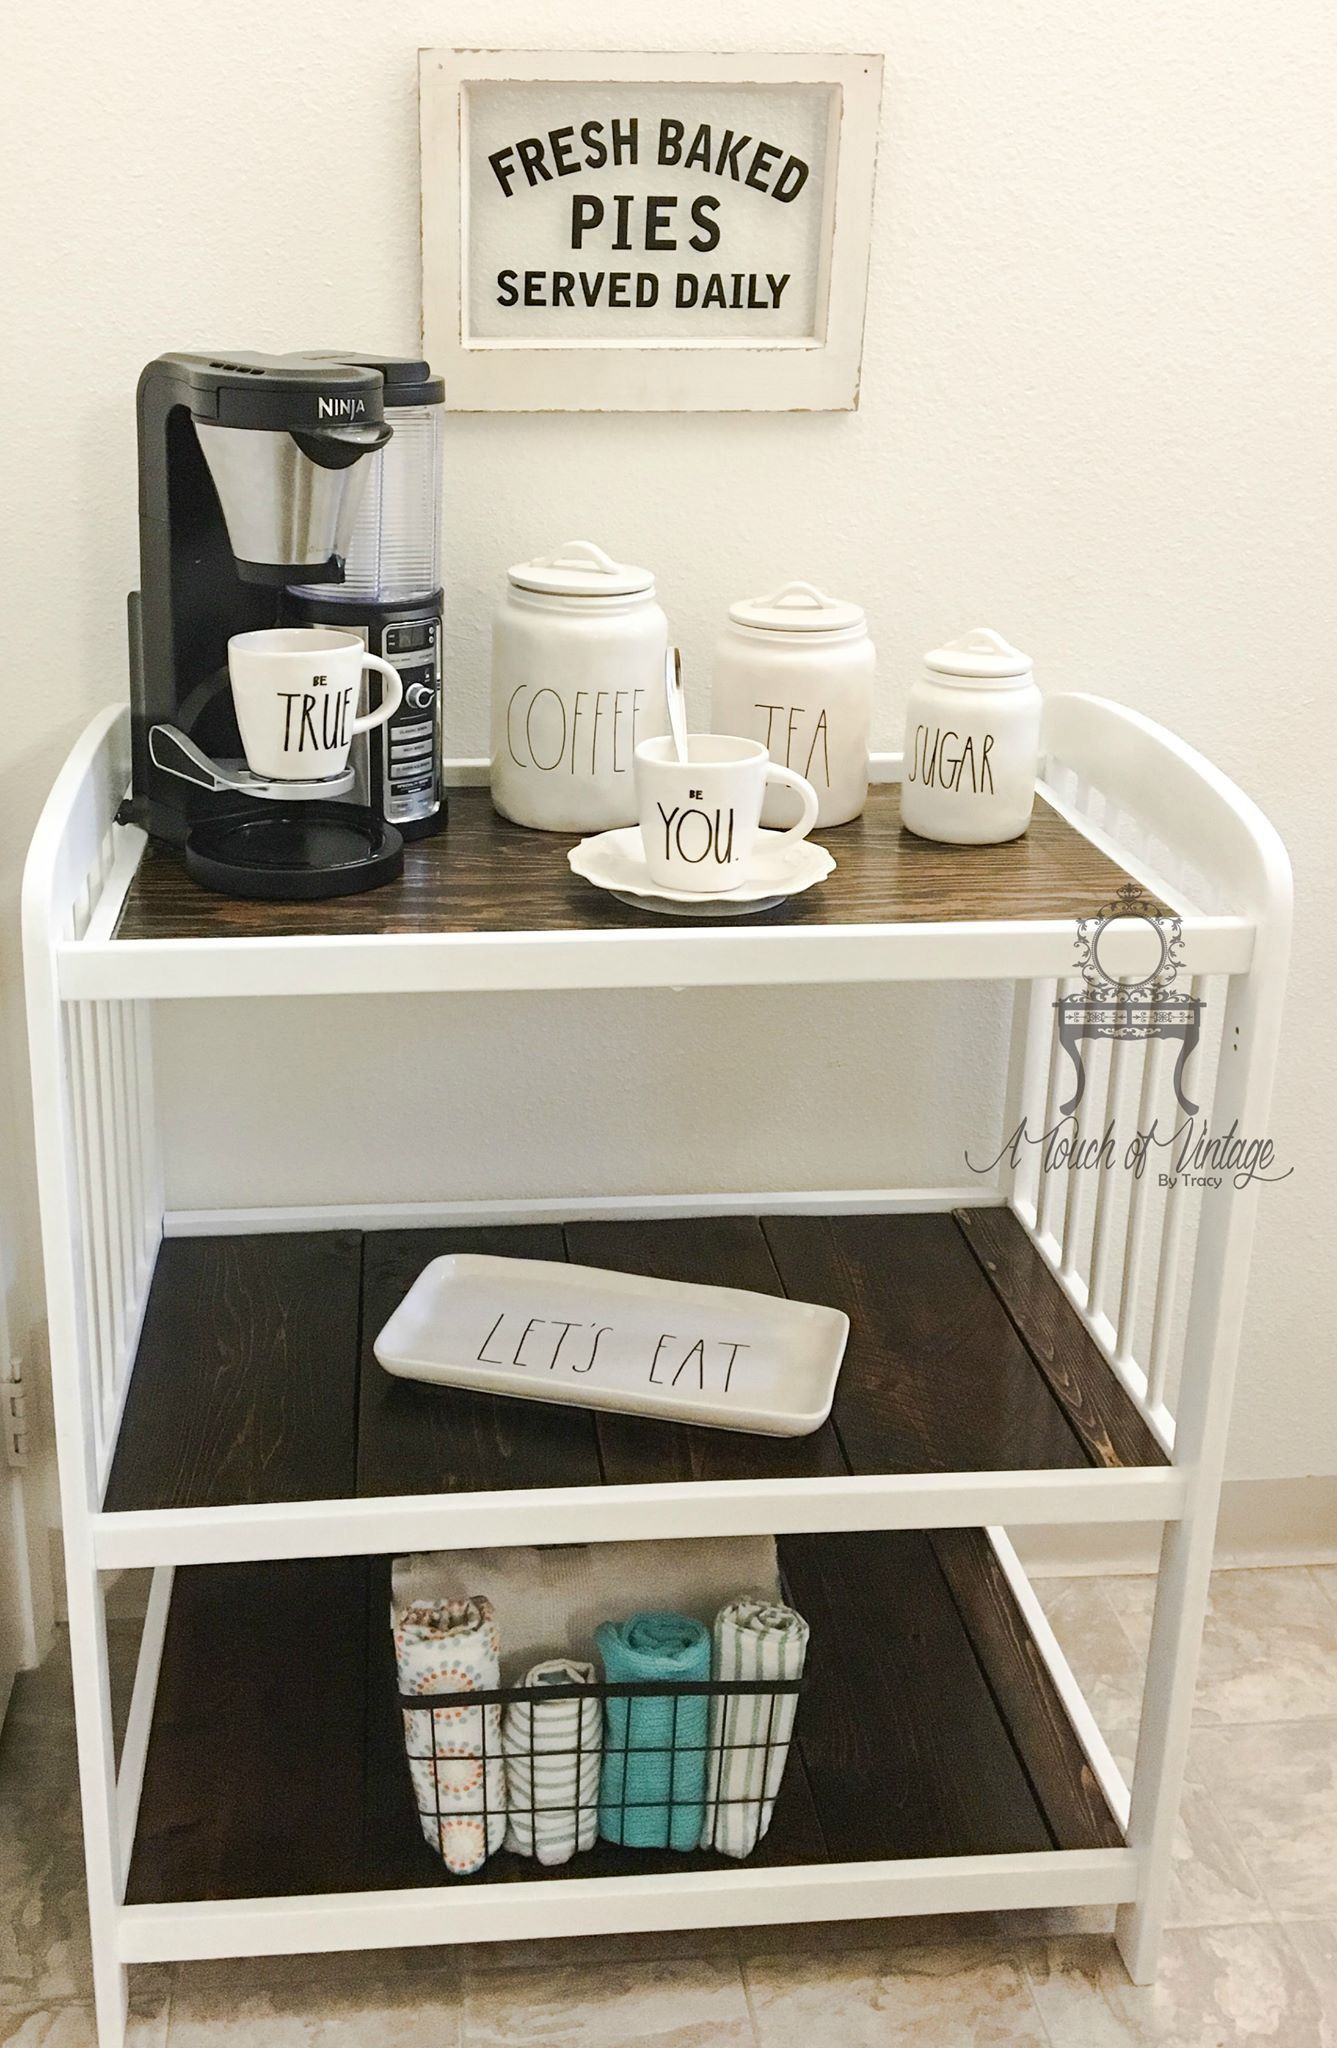 Baby Changing Table Repurposed to a Coffee Bar perfect way to